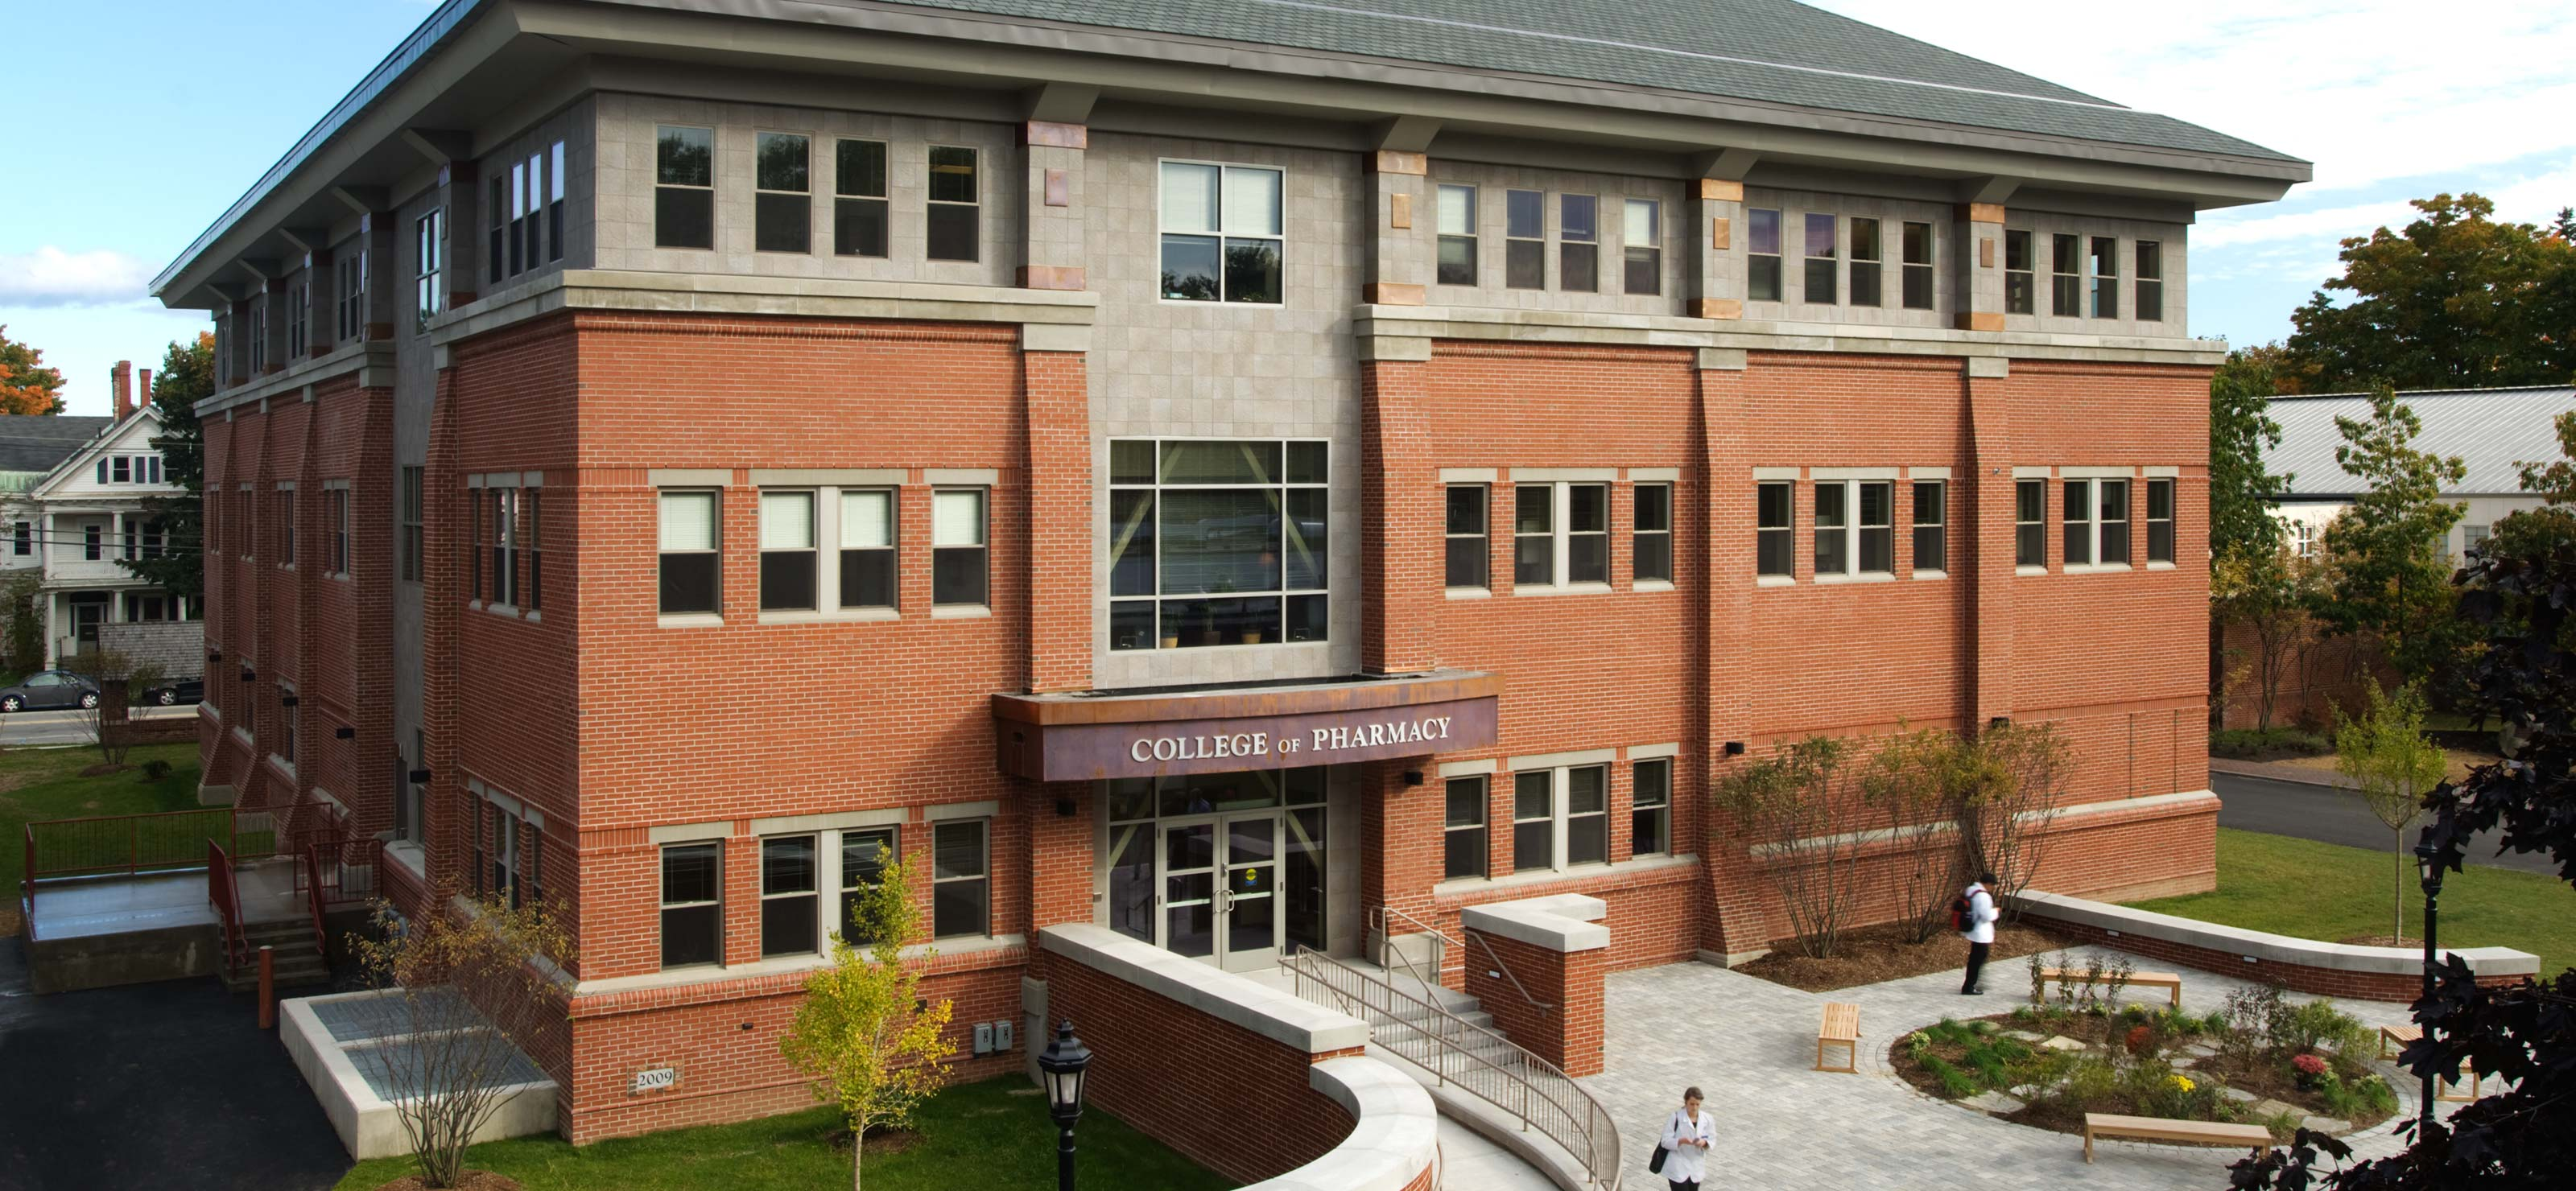 University of New England College of Pharmacy